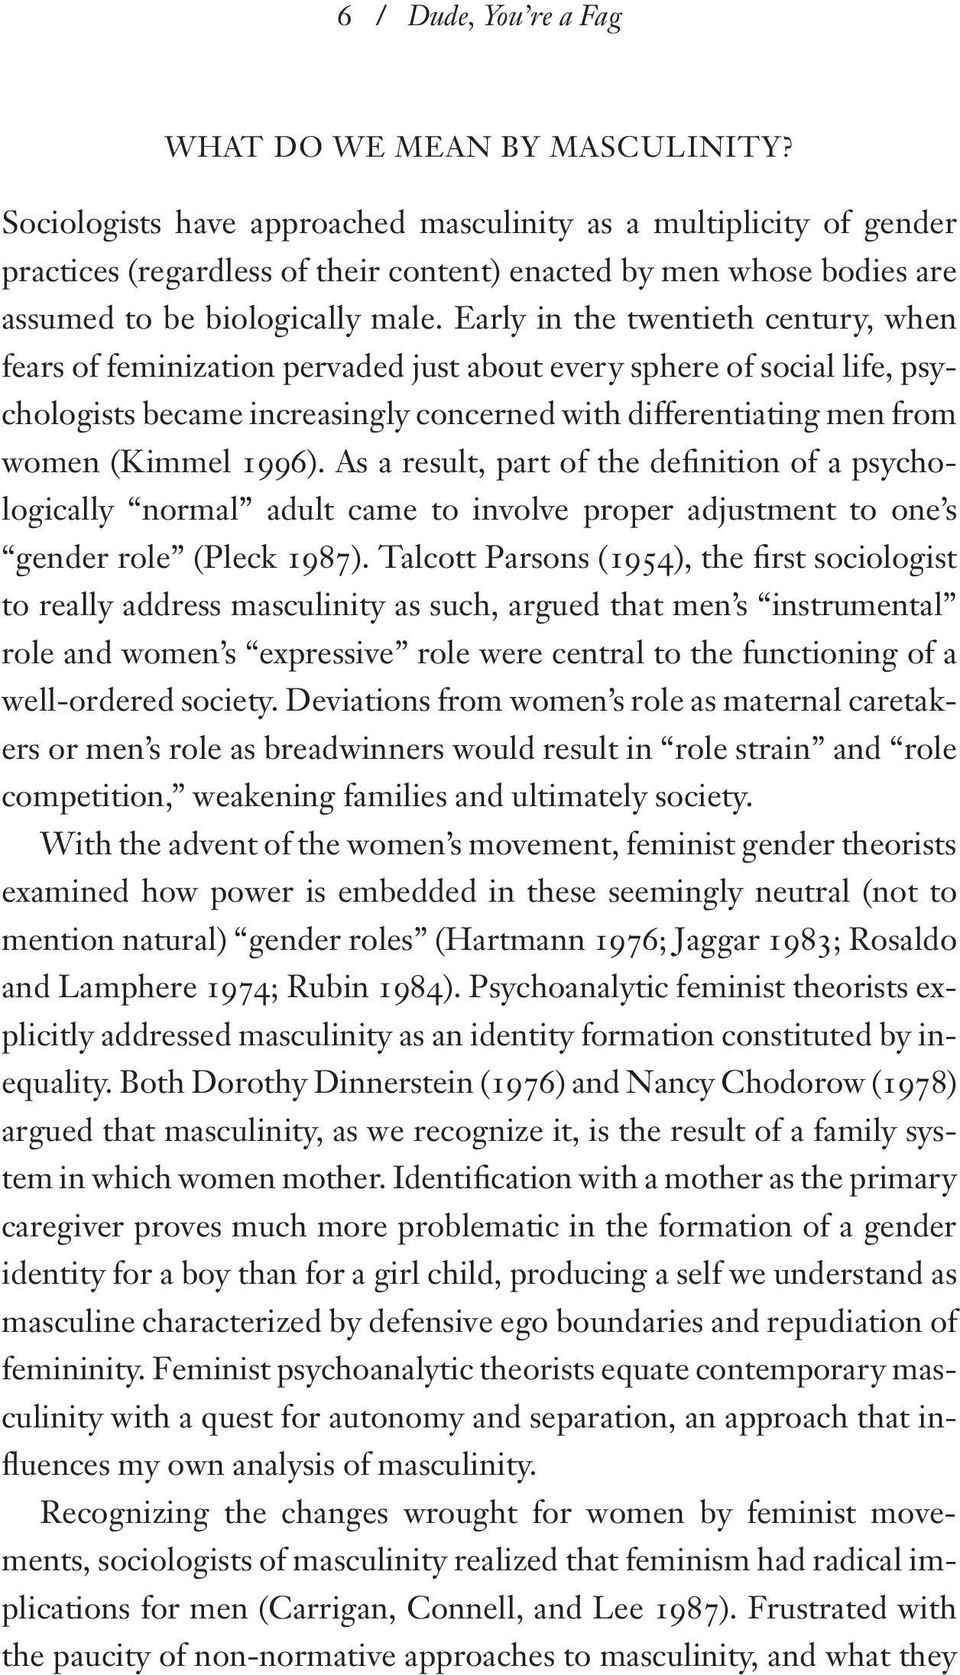 Early in the twentieth century, when fears of feminization pervaded just about every sphere of social life, psychologists became increasingly concerned with differentiating men from women (Kimmel